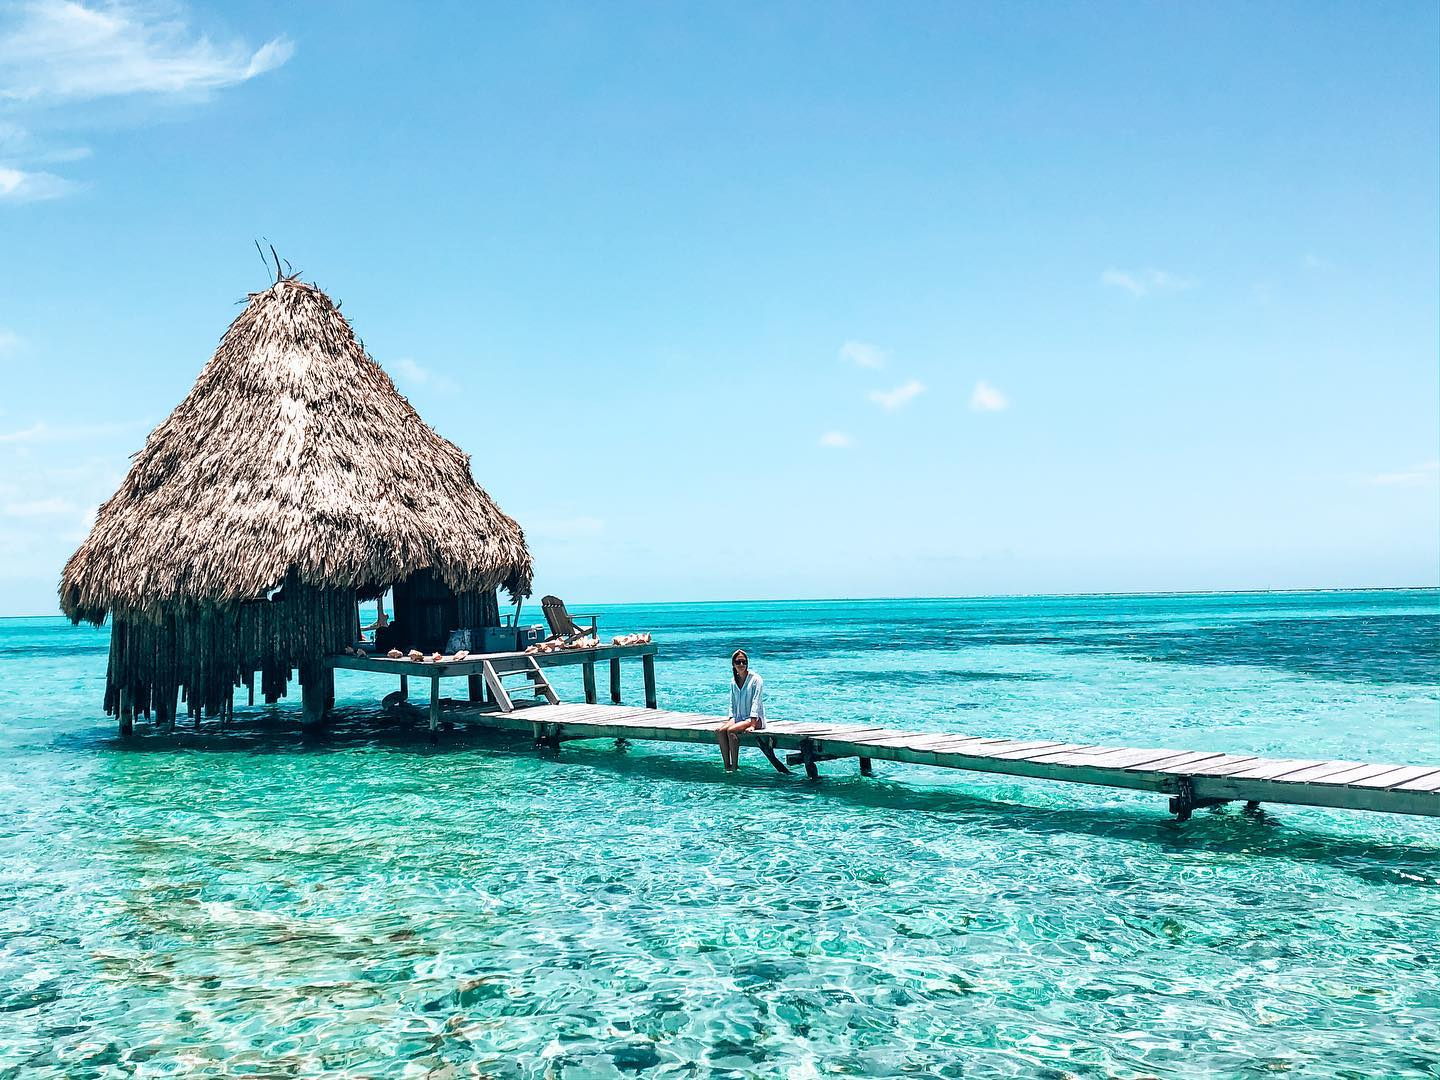 glovers reef atoll roeming belize